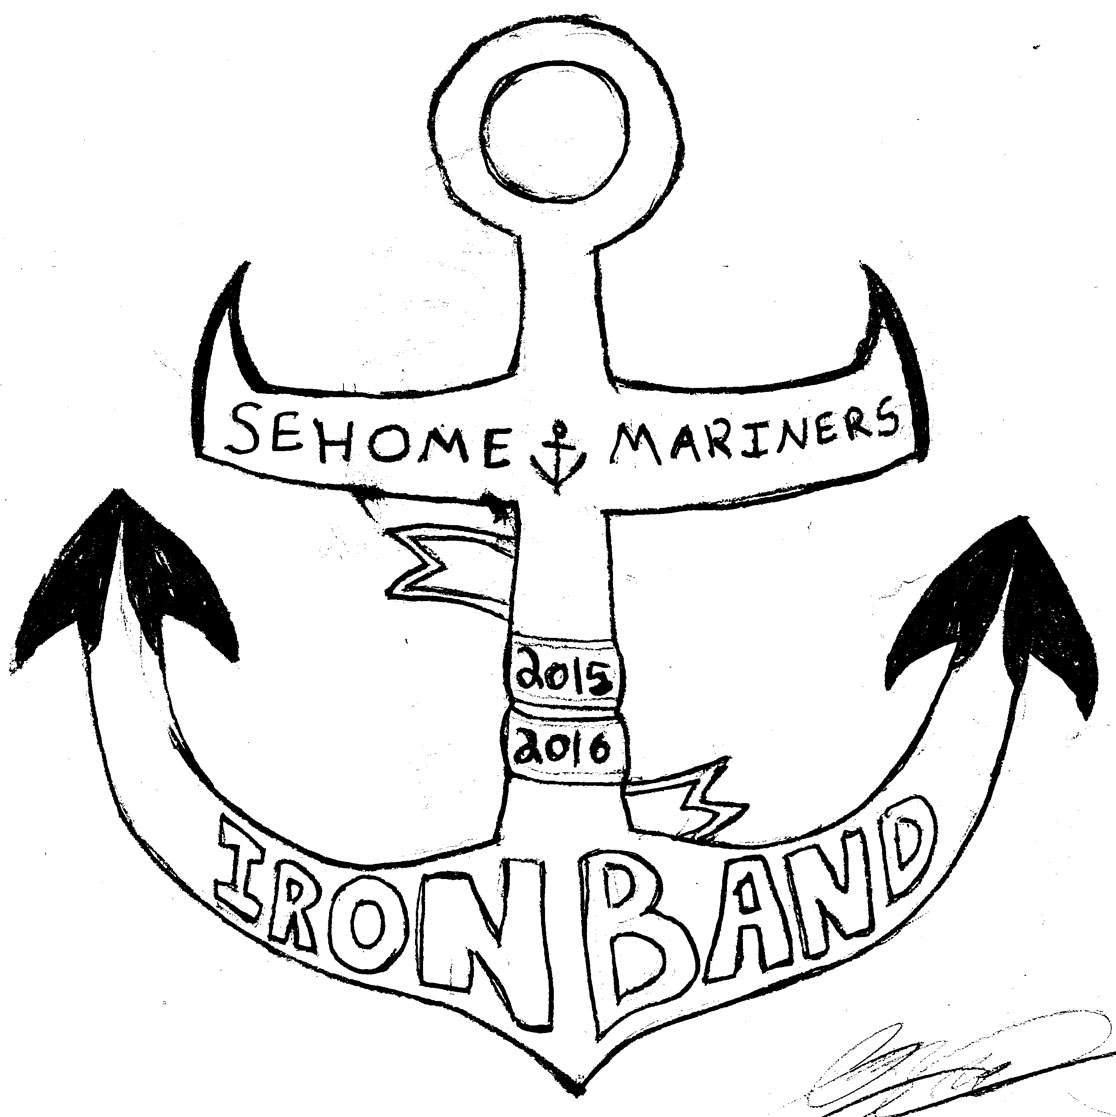 Sehome Band Page